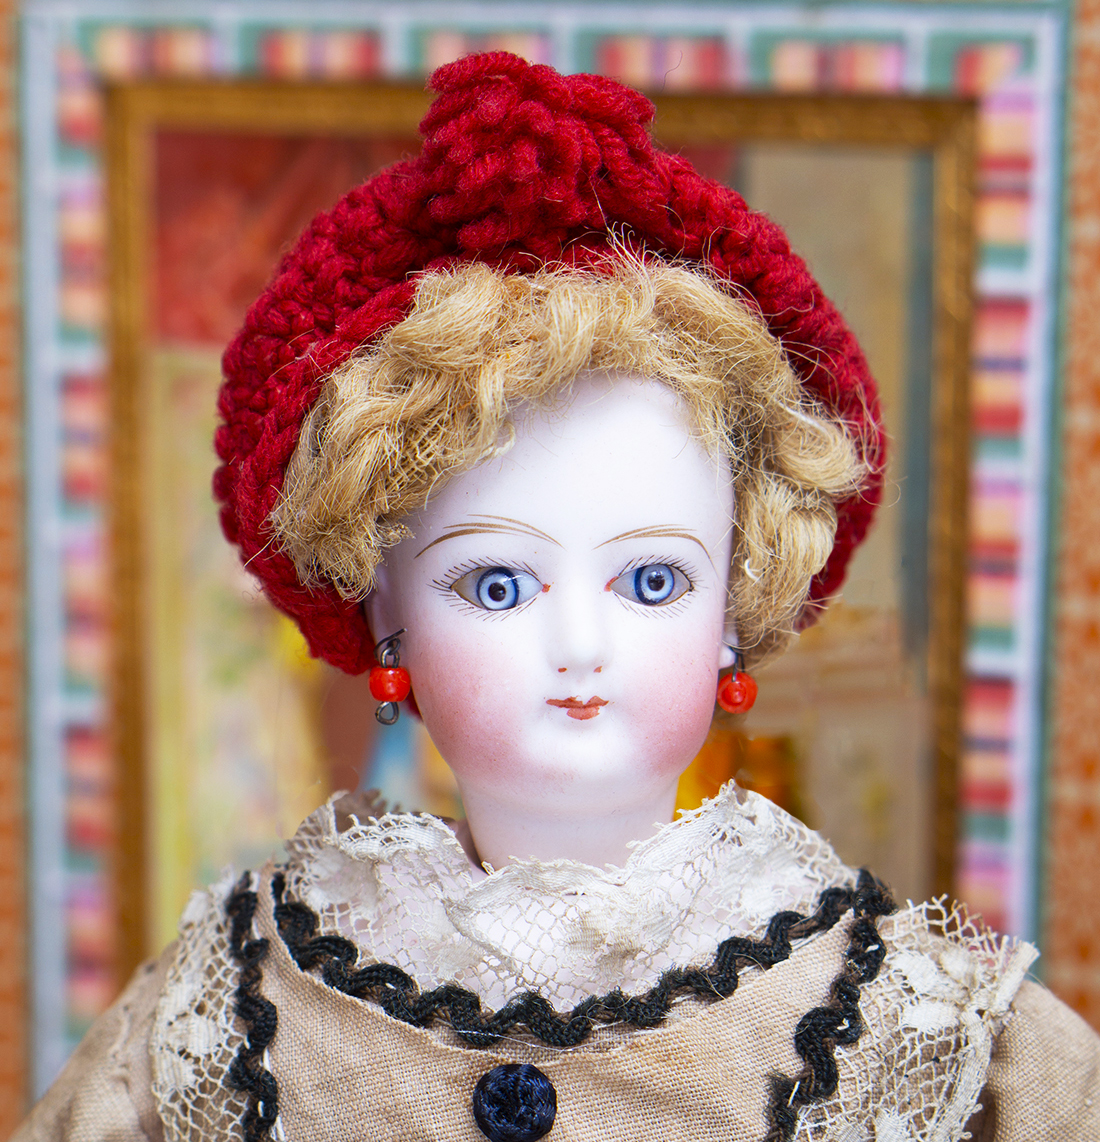 Antique Fashion doll